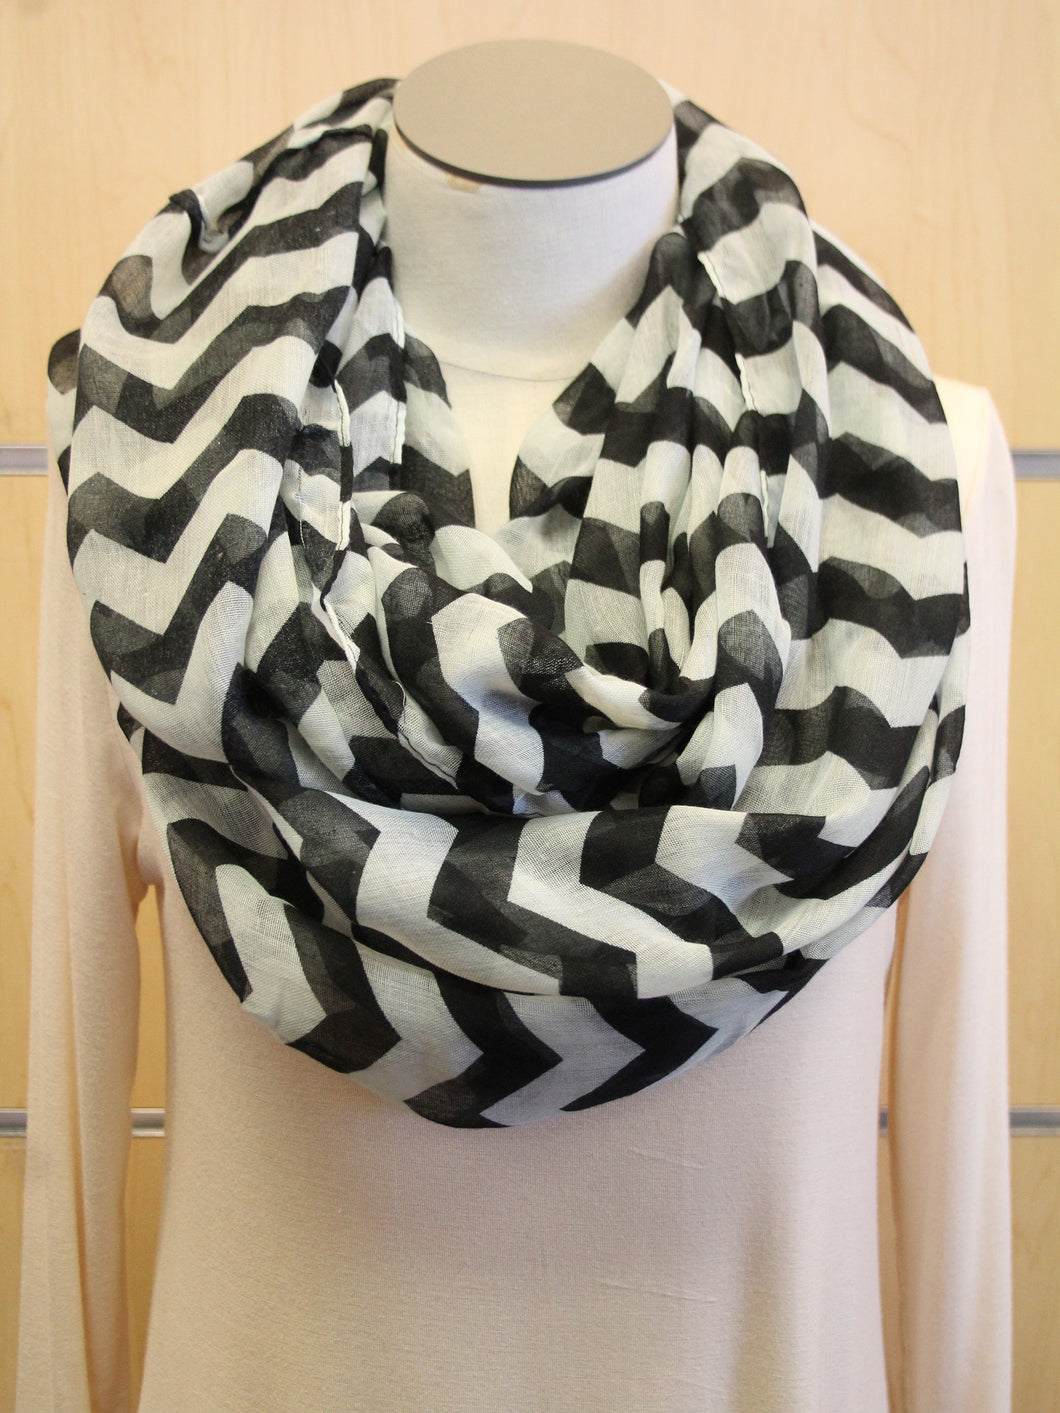 ADO | Infinity Black and Mint Tint Chevron Scarf - All Decd Out